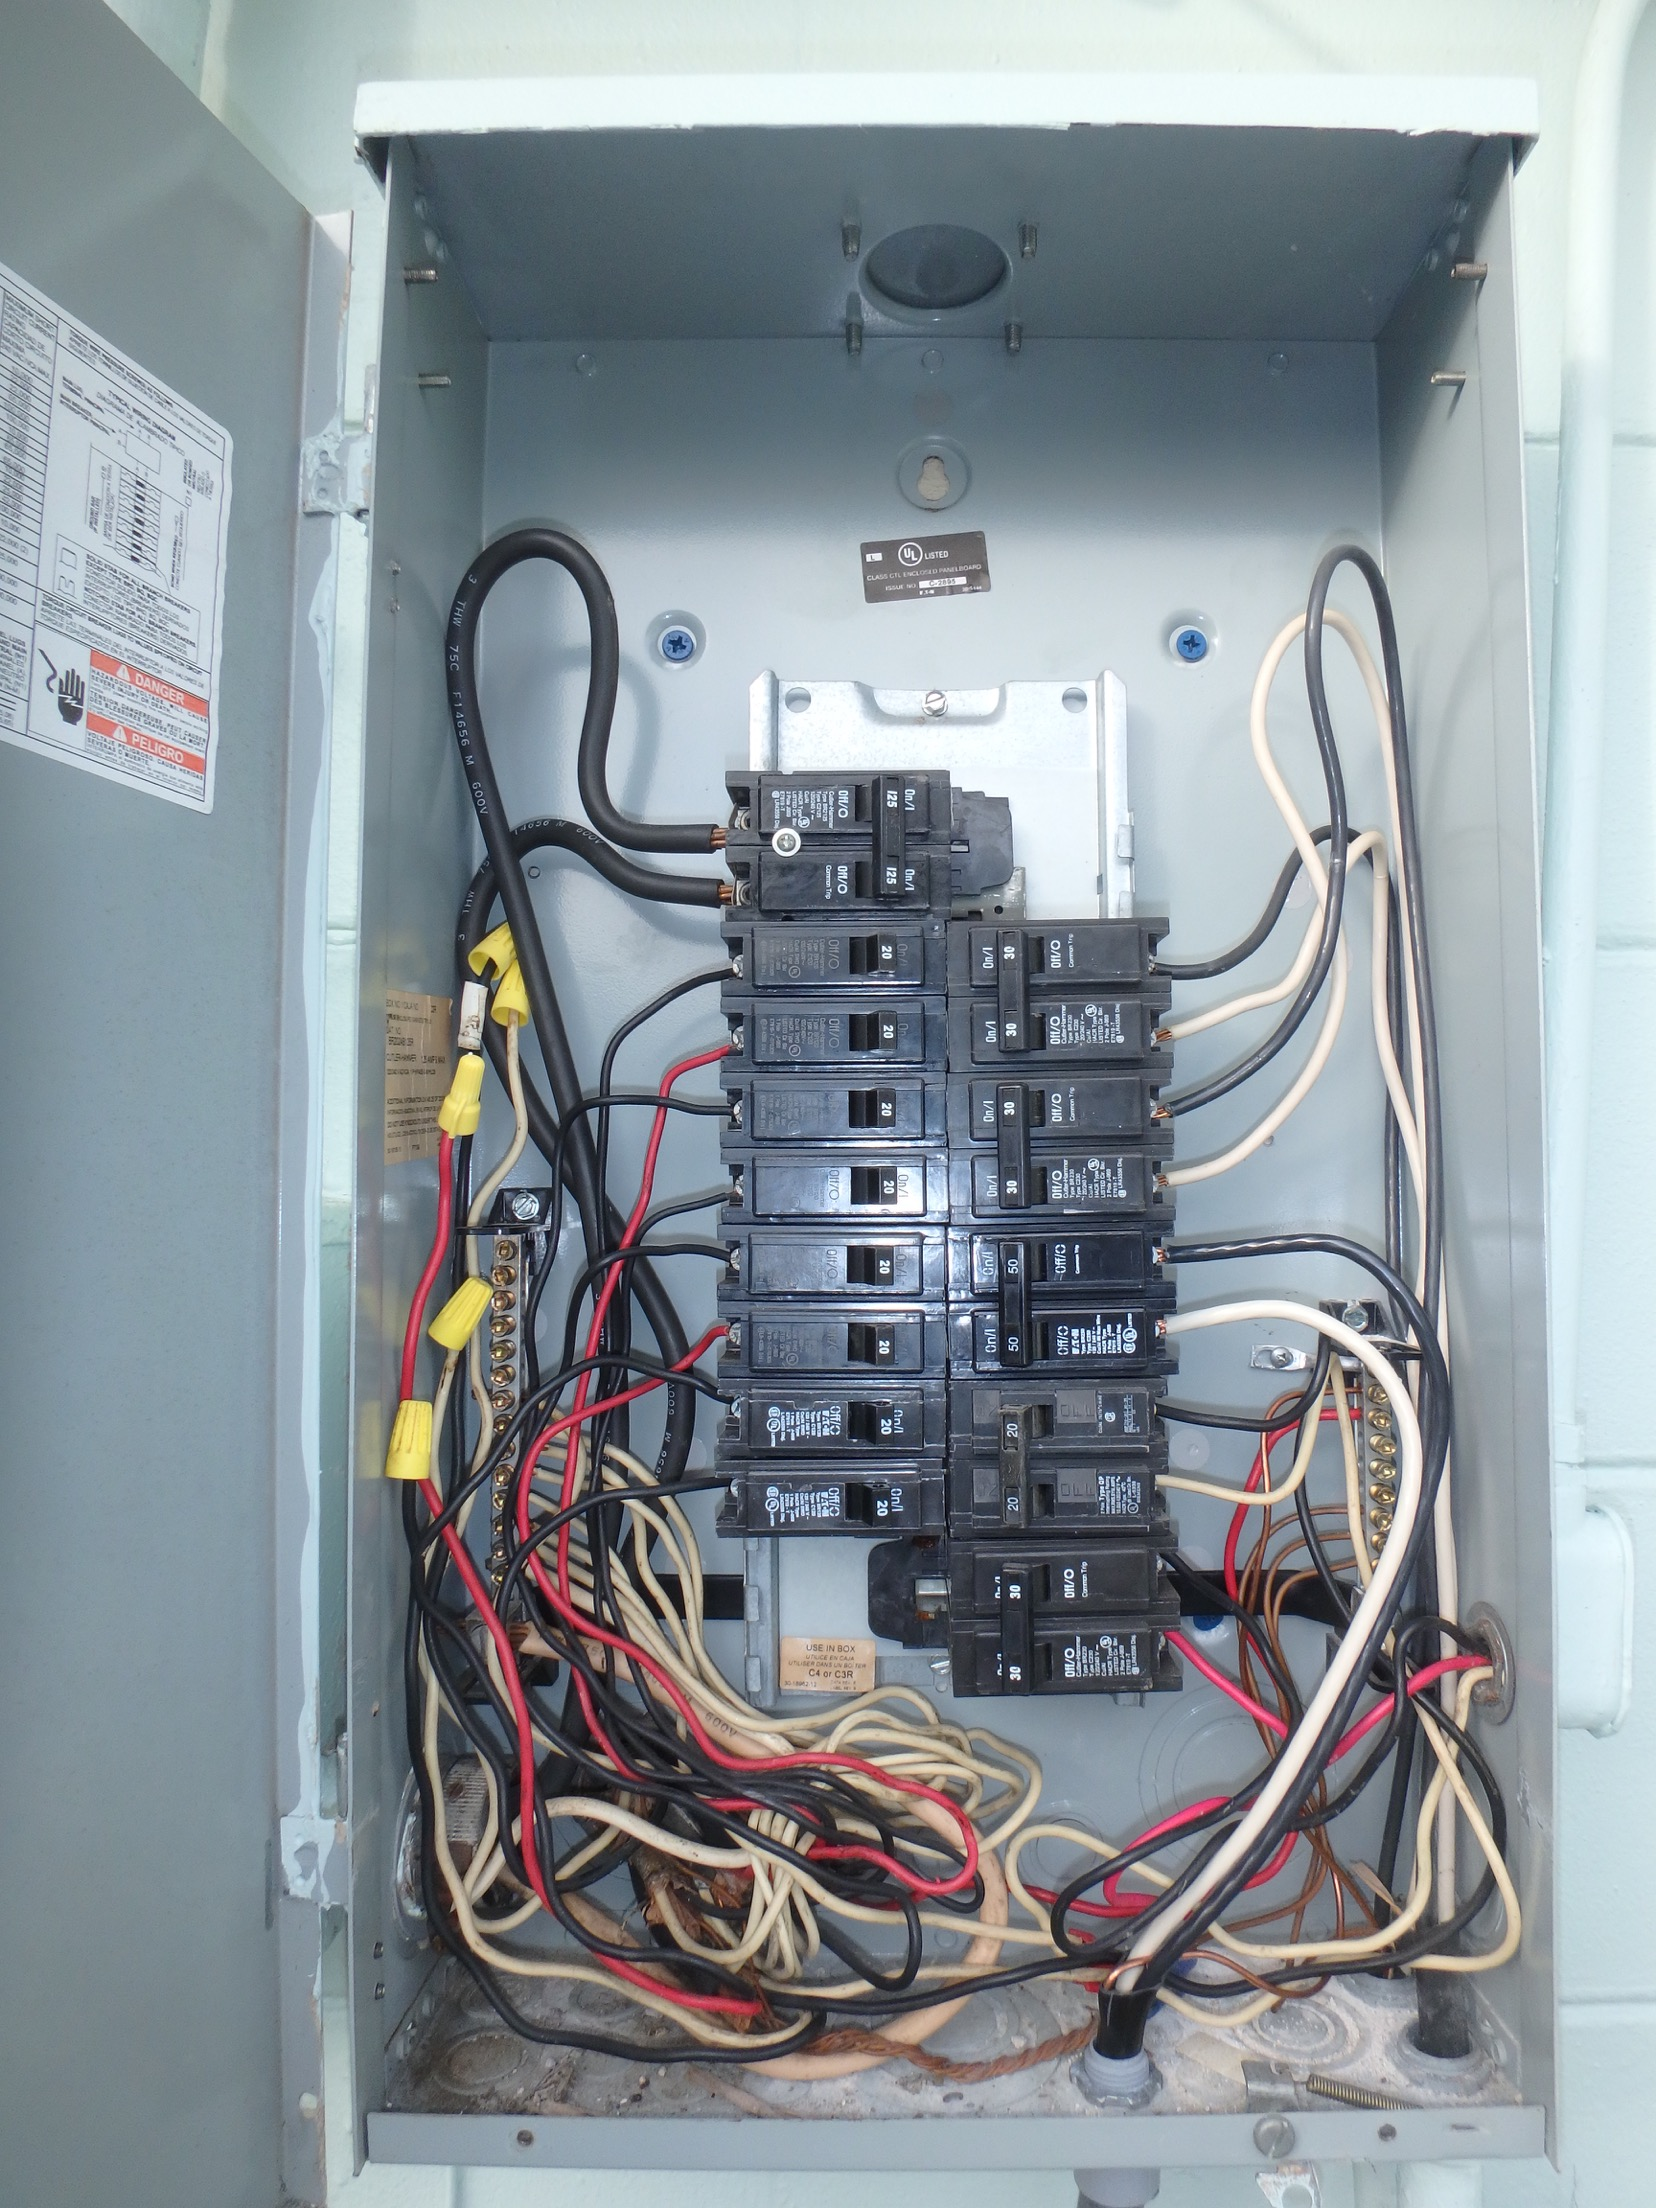 Magnificent Buying A New Home And Had Questions On Electrical Box Home Wiring Cloud Overrenstrafr09Org